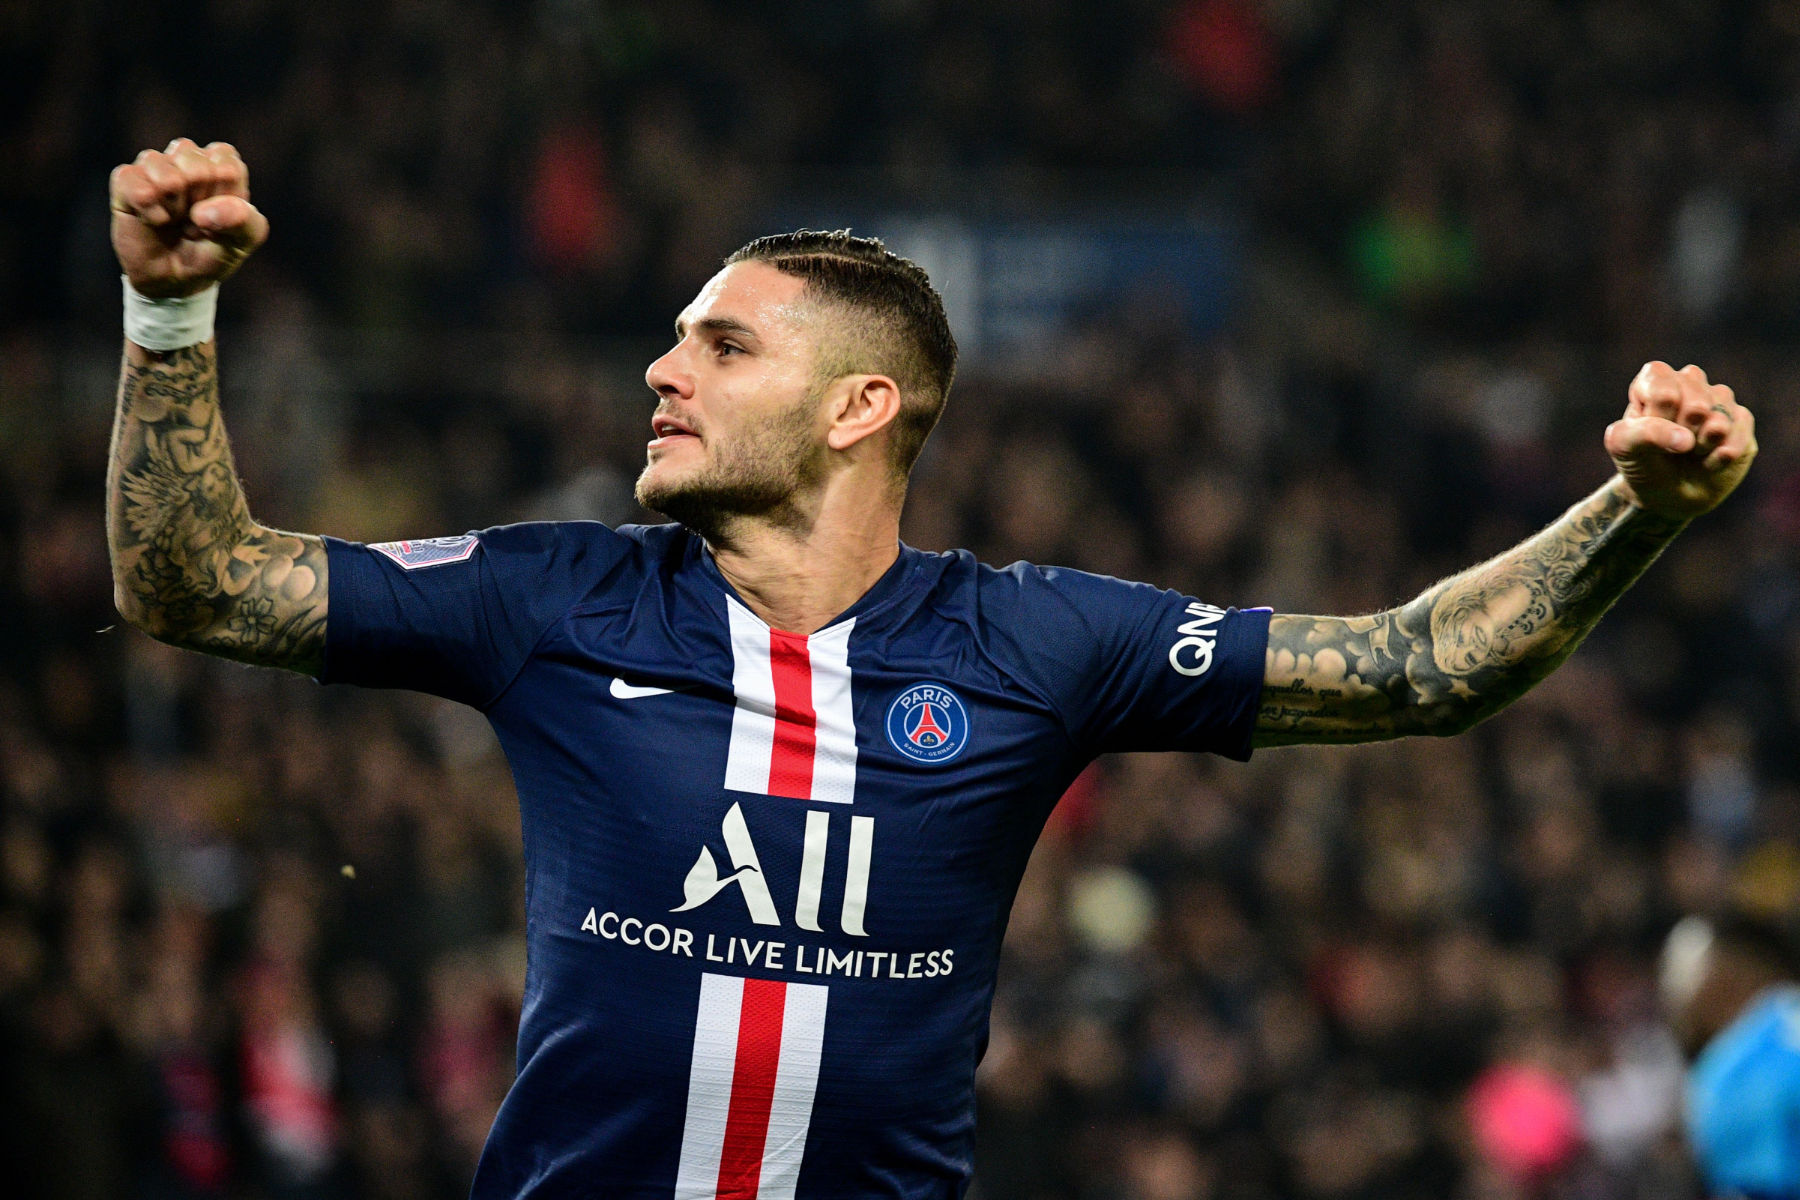 Top Officials At Psg Are At Odds Over The Future Of Mauro Icardi Psg Talk